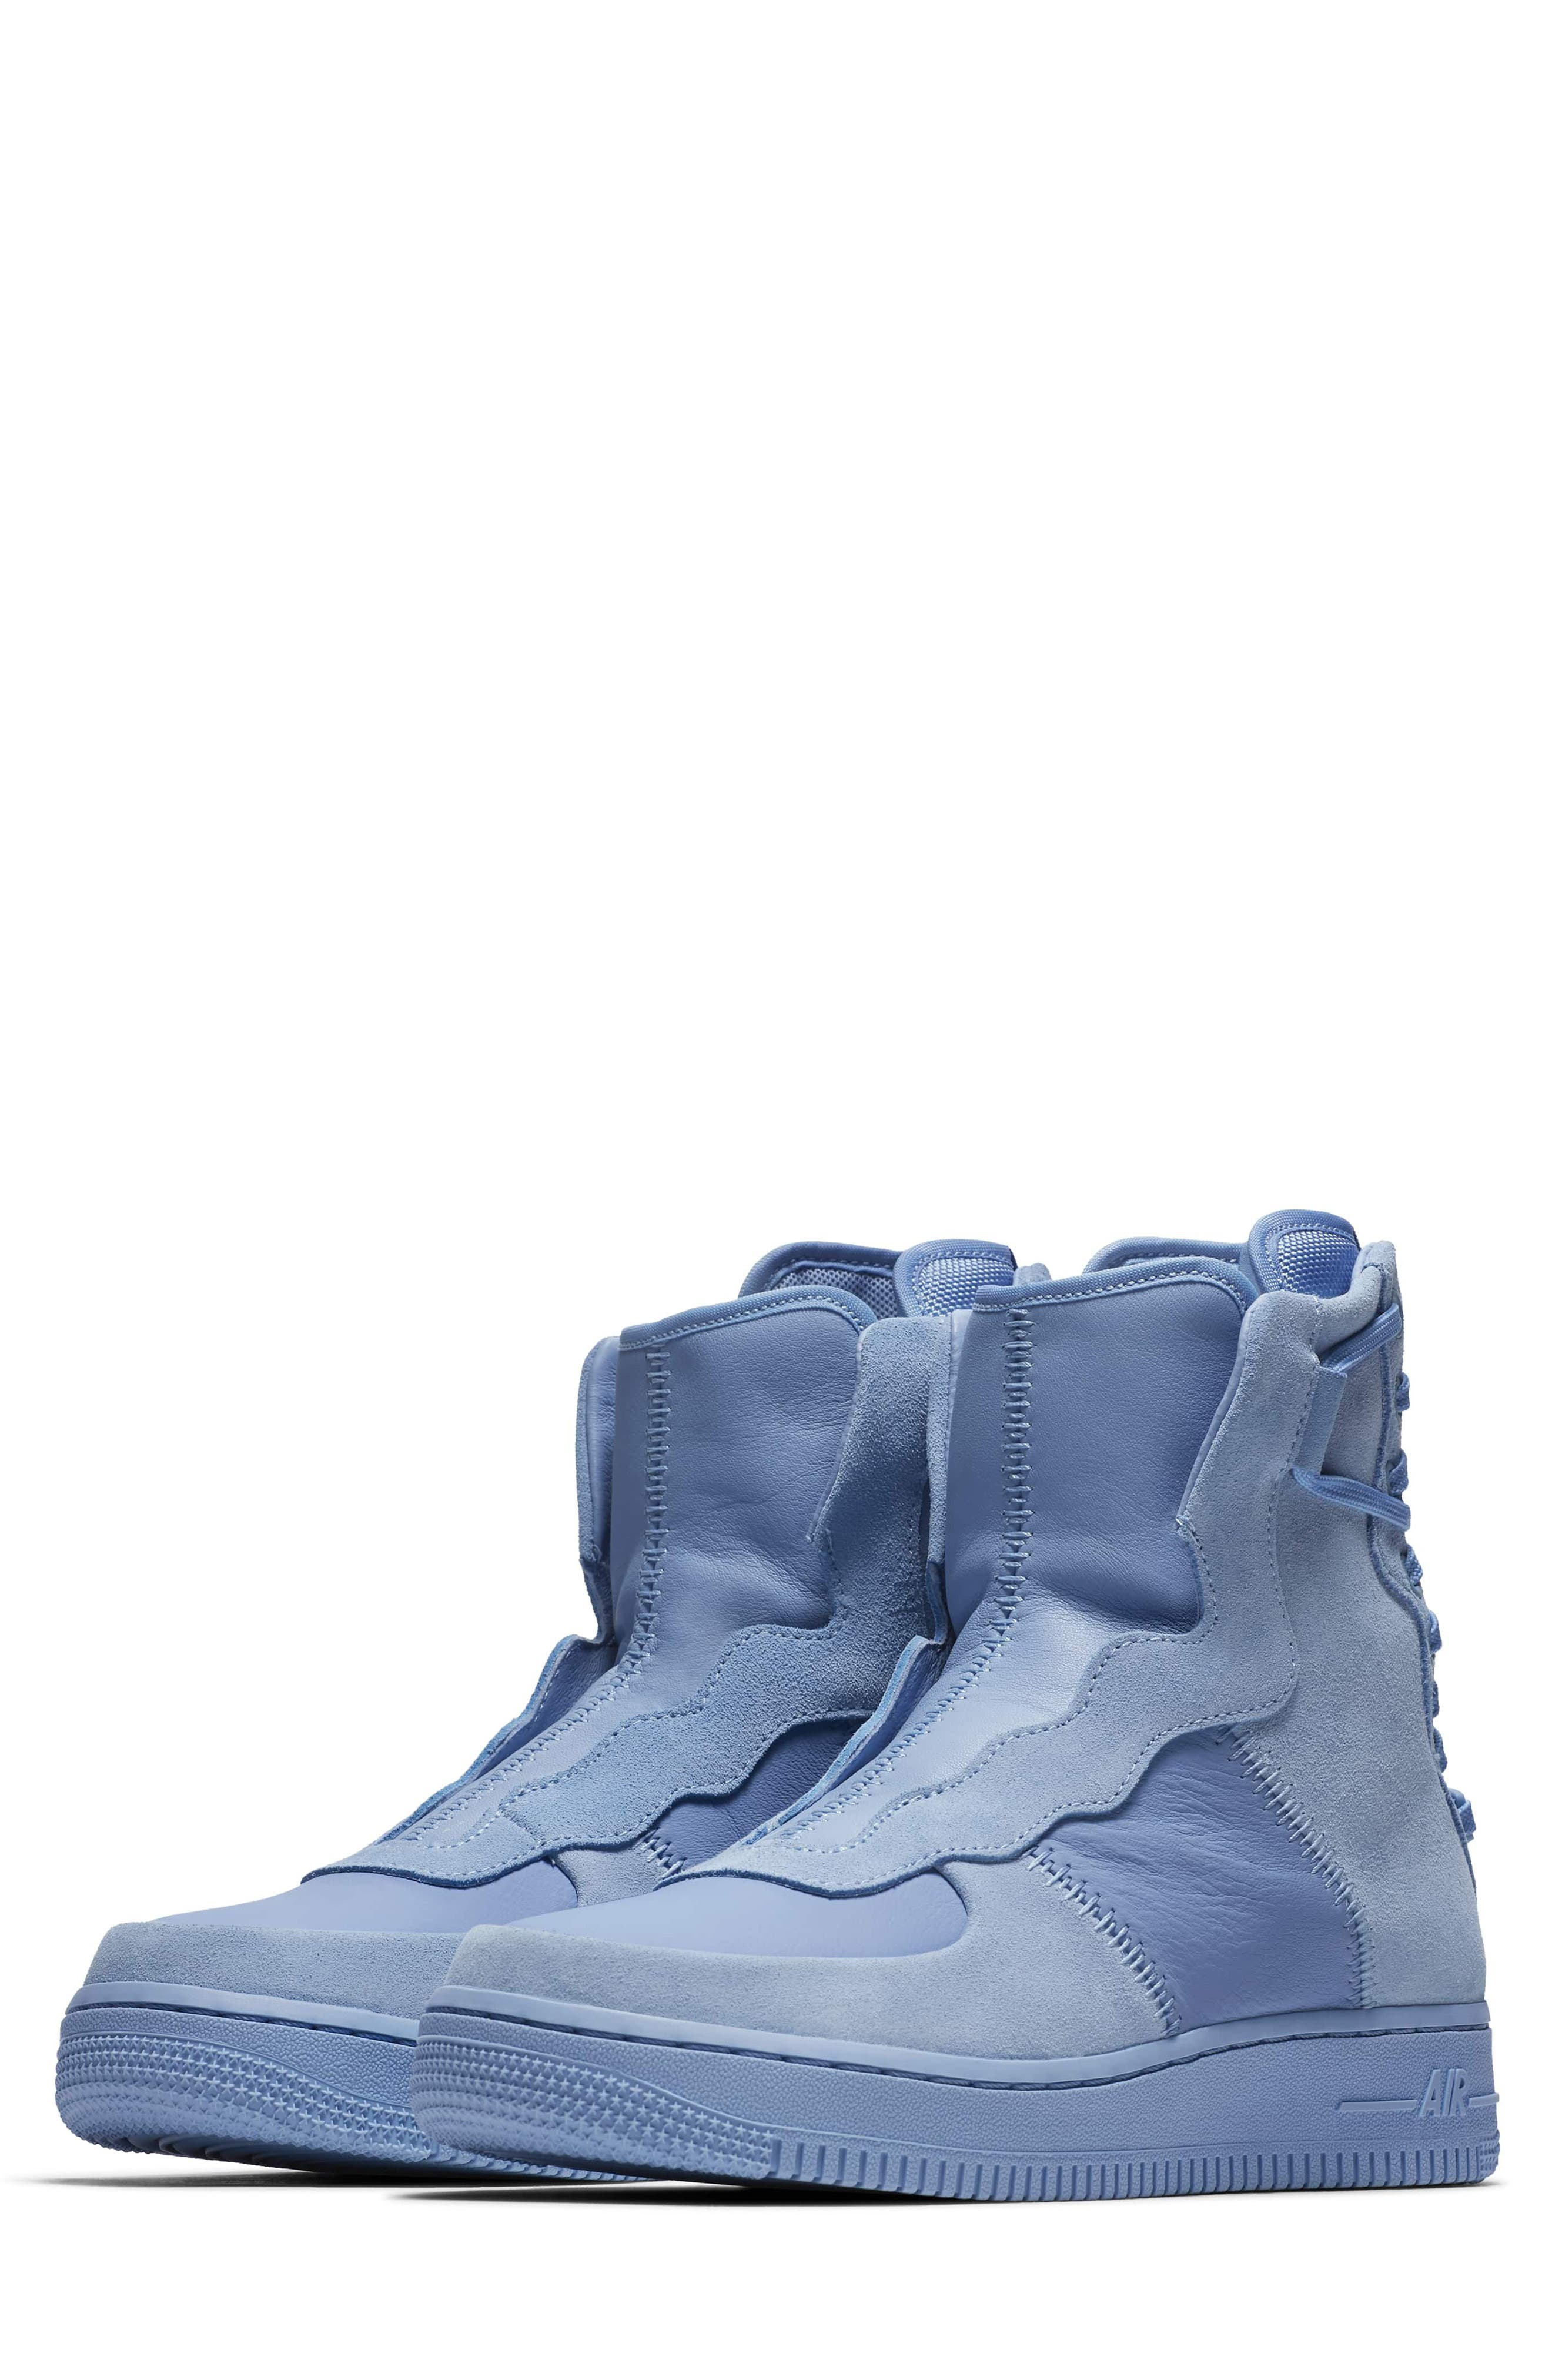 Air Force 1 Rebel XX High Top Sneaker,                         Main,                         color, LIGHT BLUE